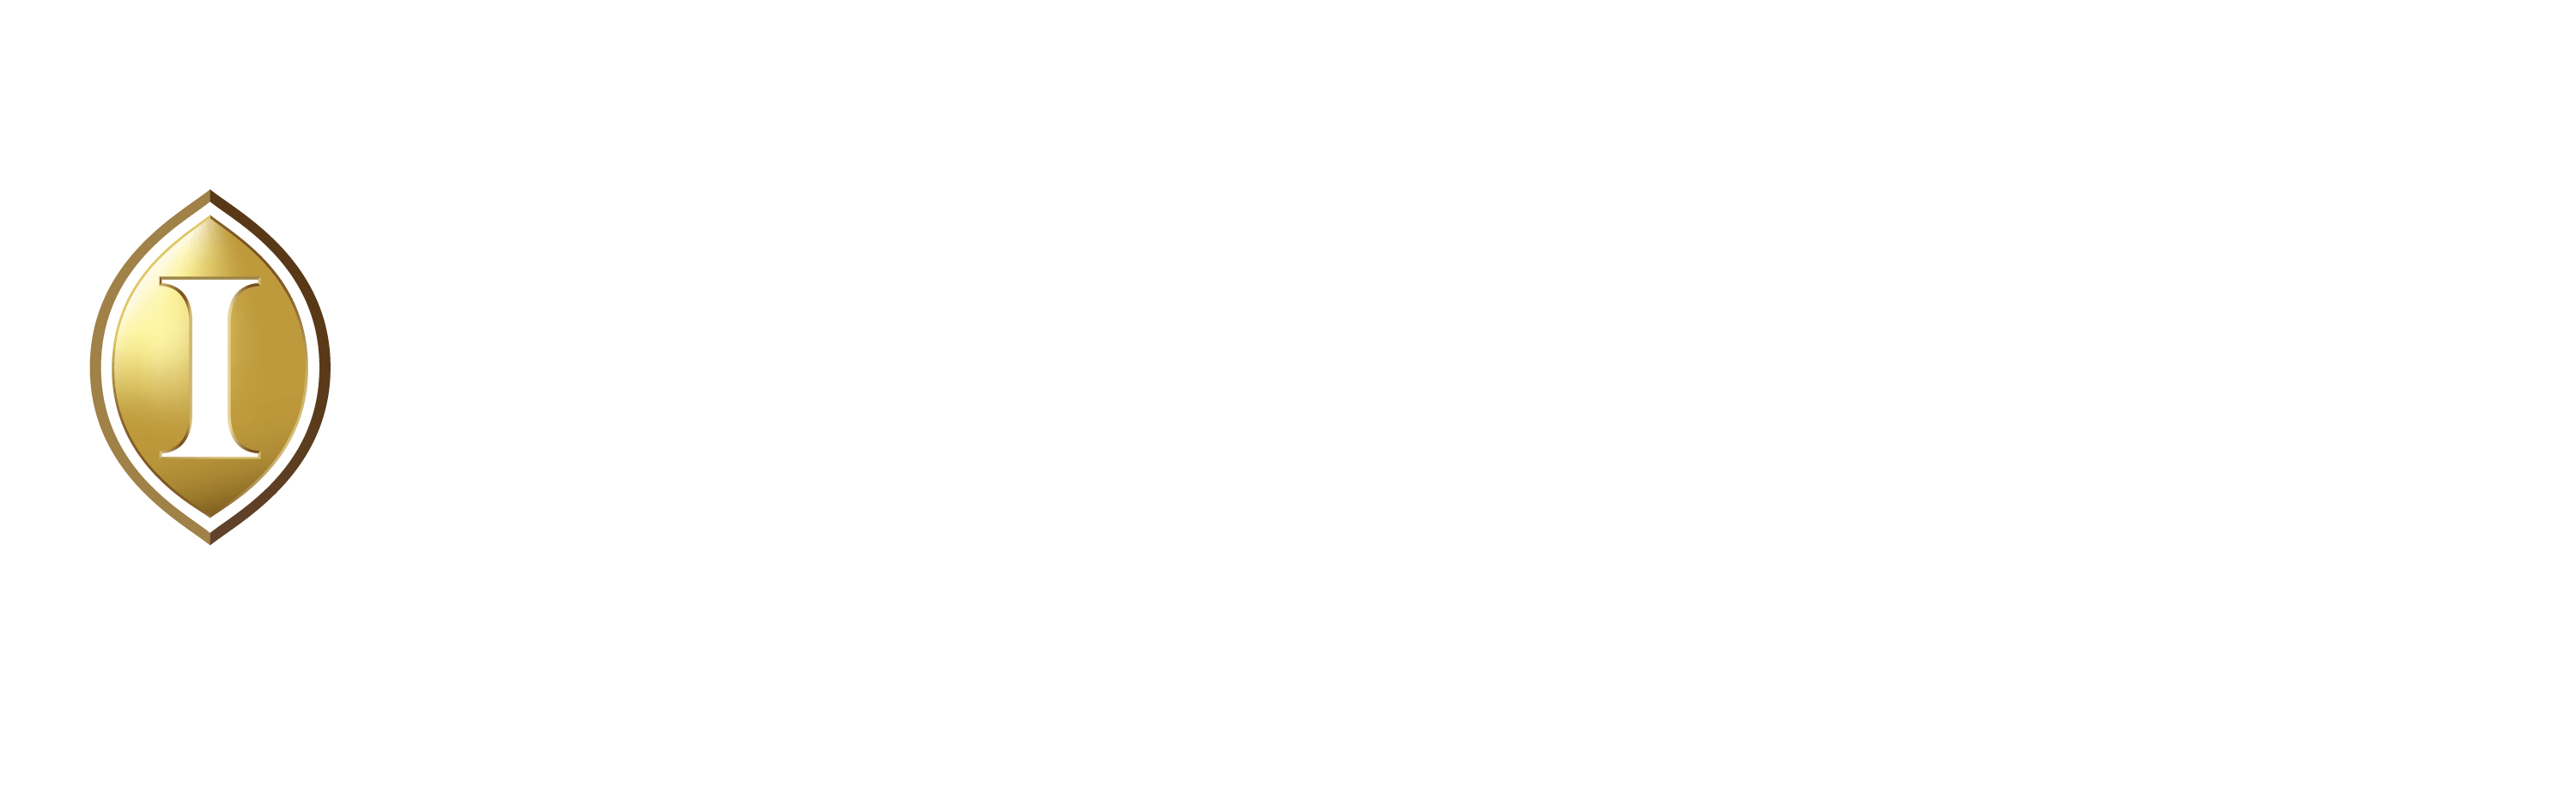 intercontinental-ha-long-bay-logo